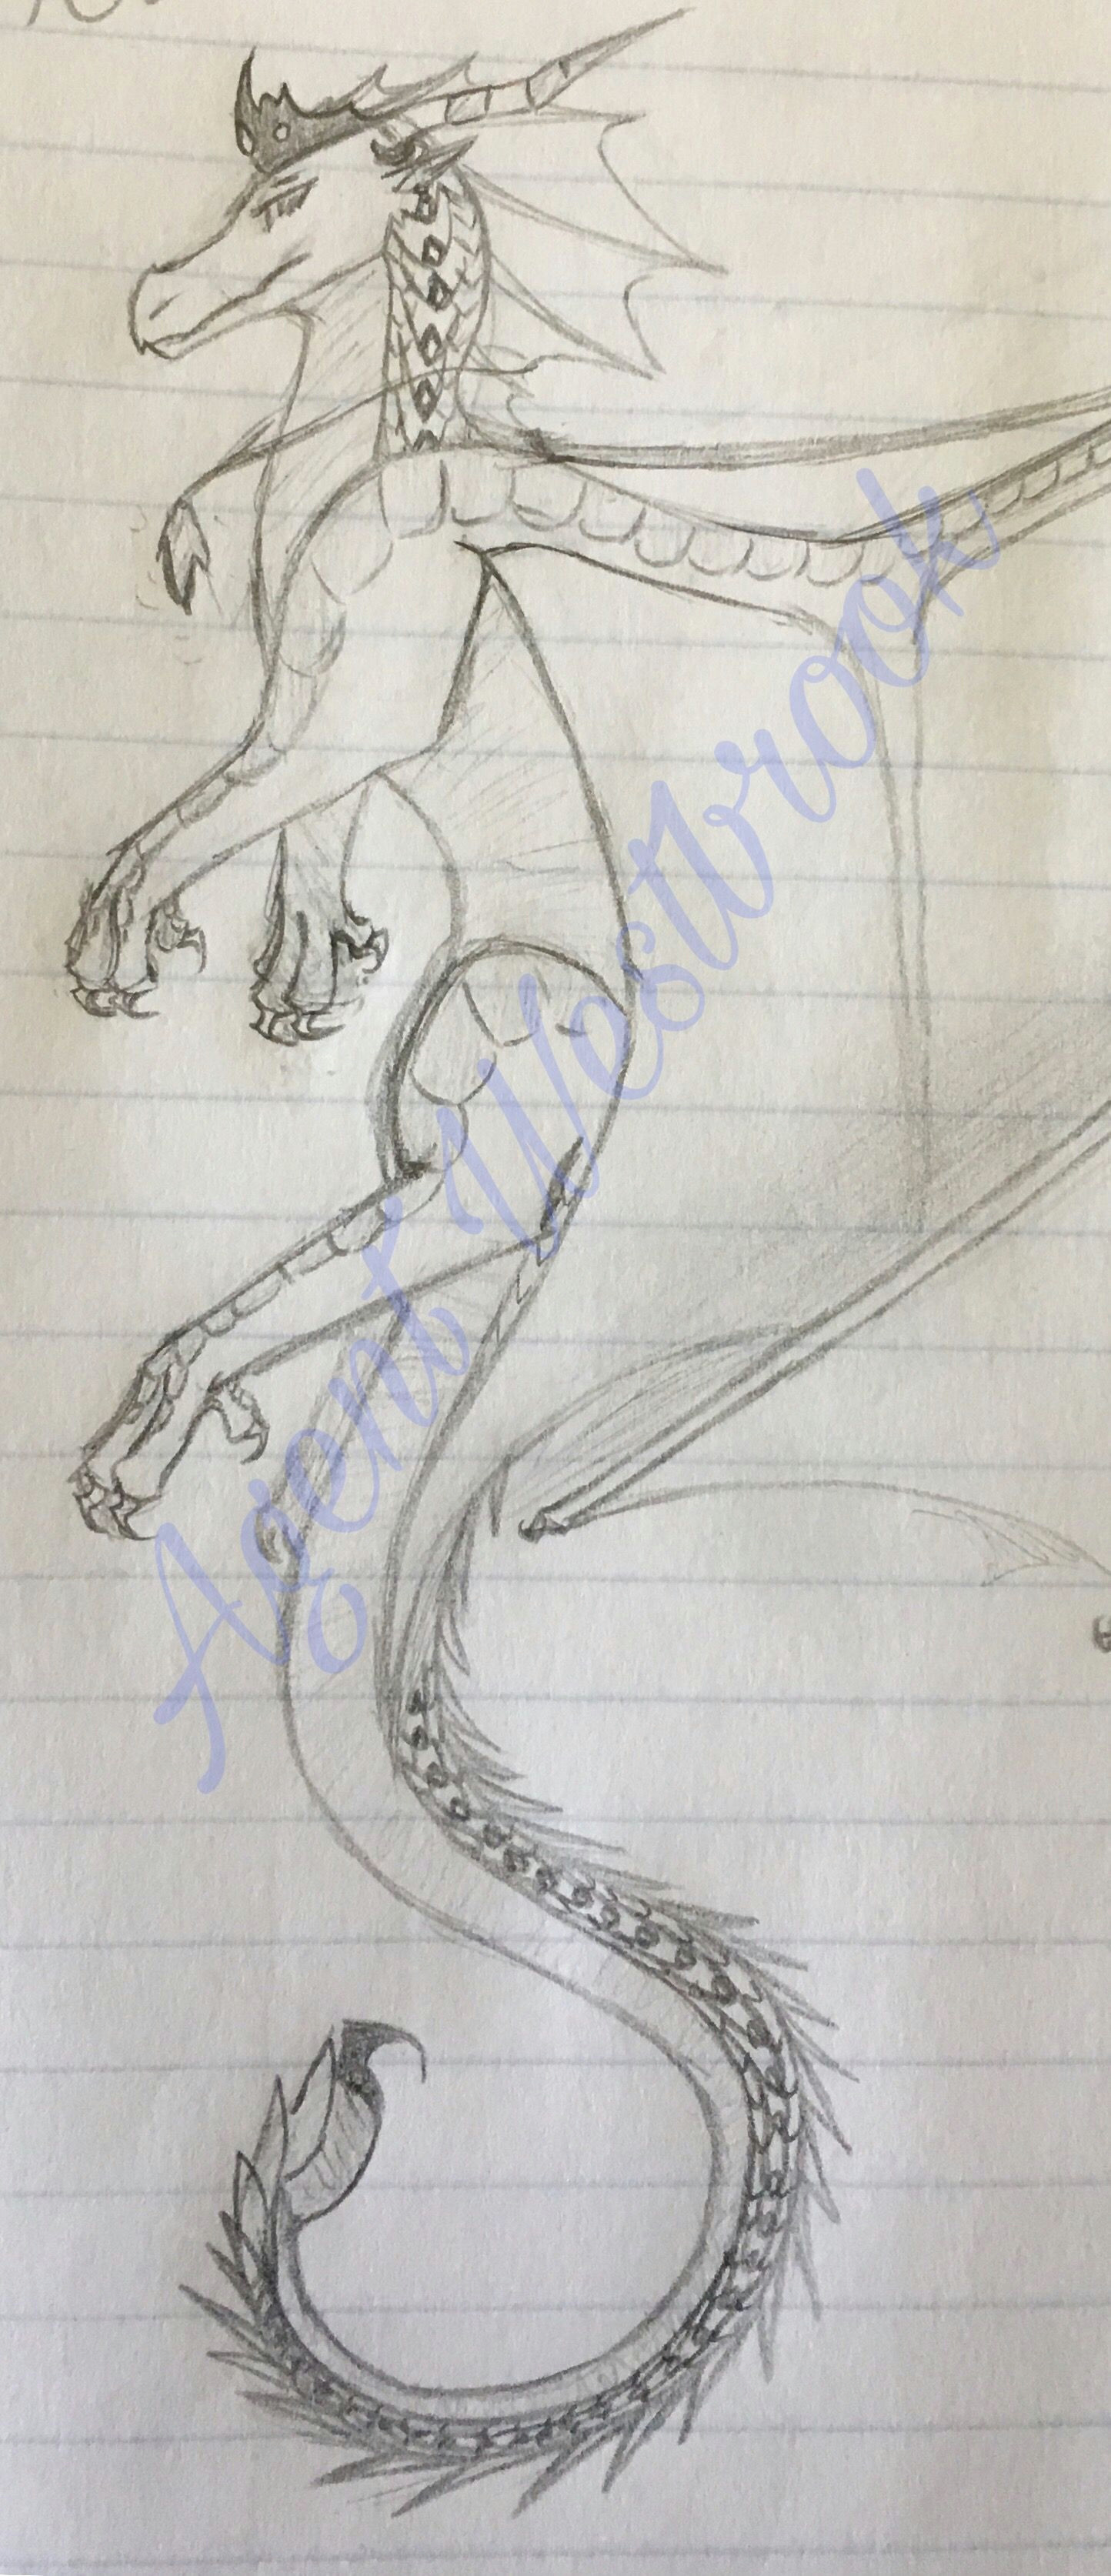 queen supernova of the spacewings for the drawing contest i m really proud of this i haven t drawn a full body dragon in ages